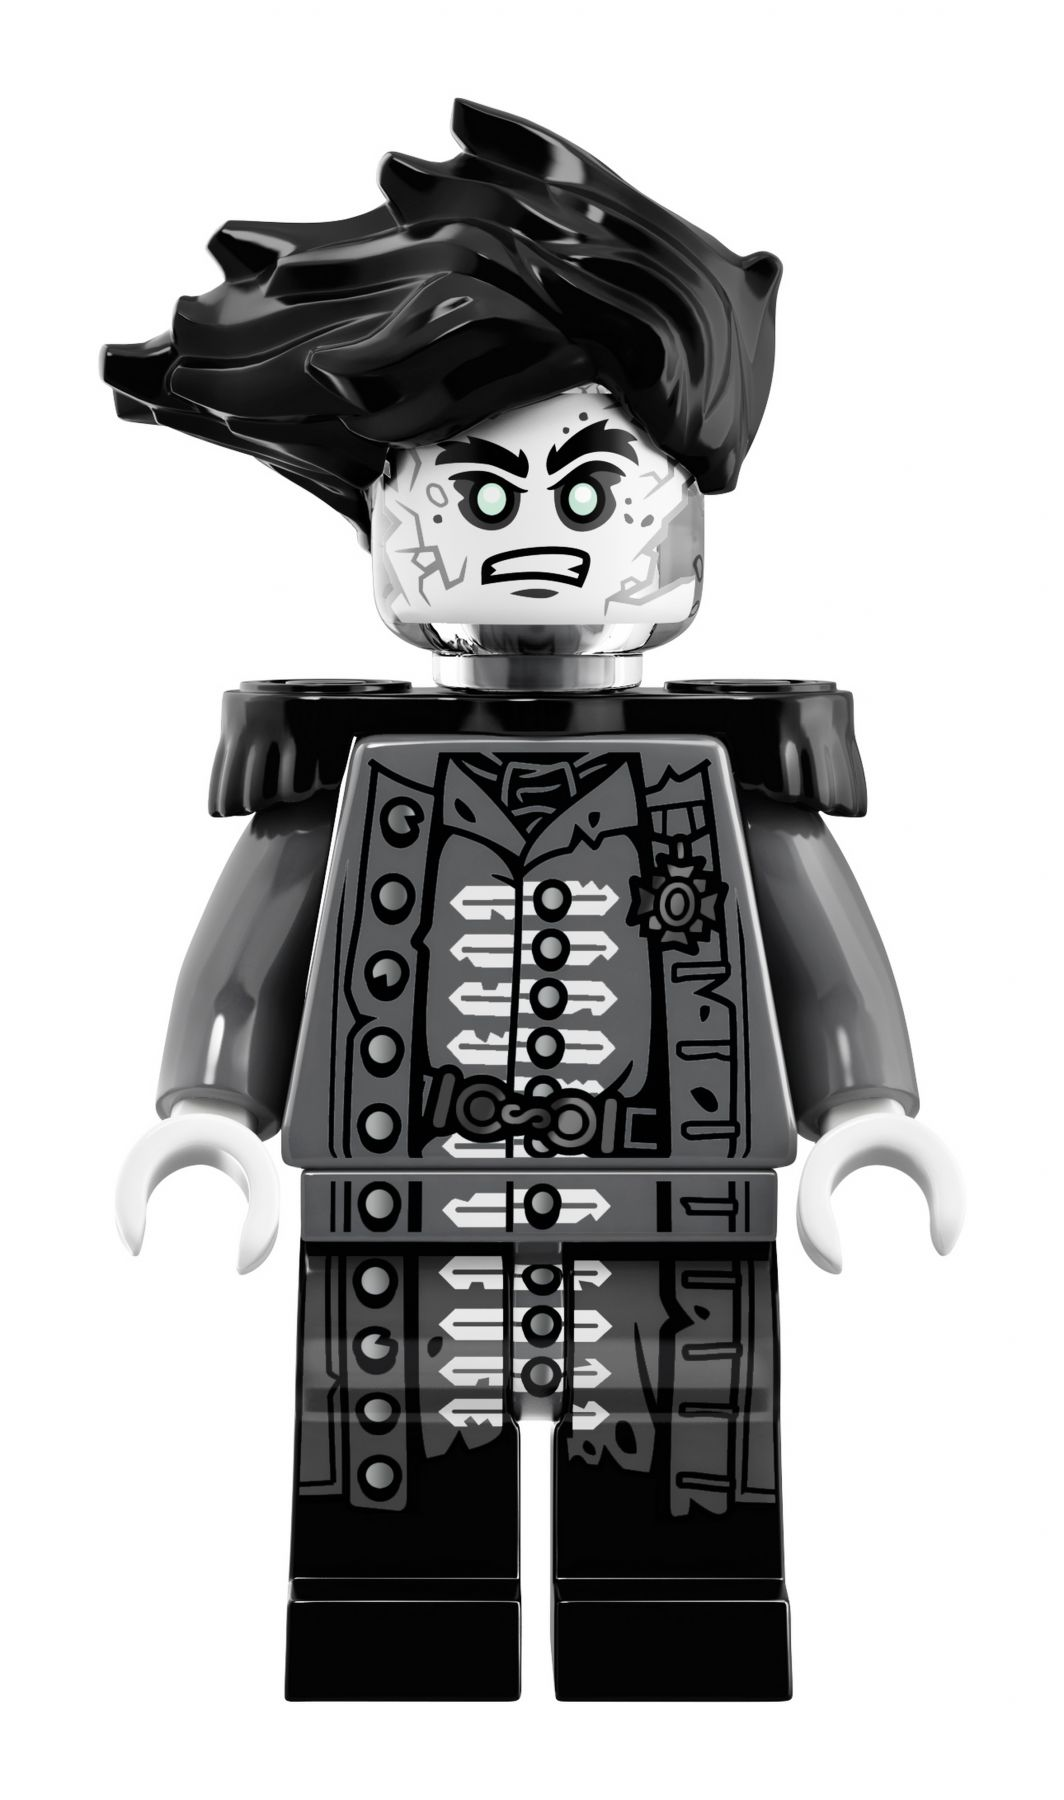 LEGO Advanced Models 71042 Silent Mary LEGO_71042_alt4.jpg